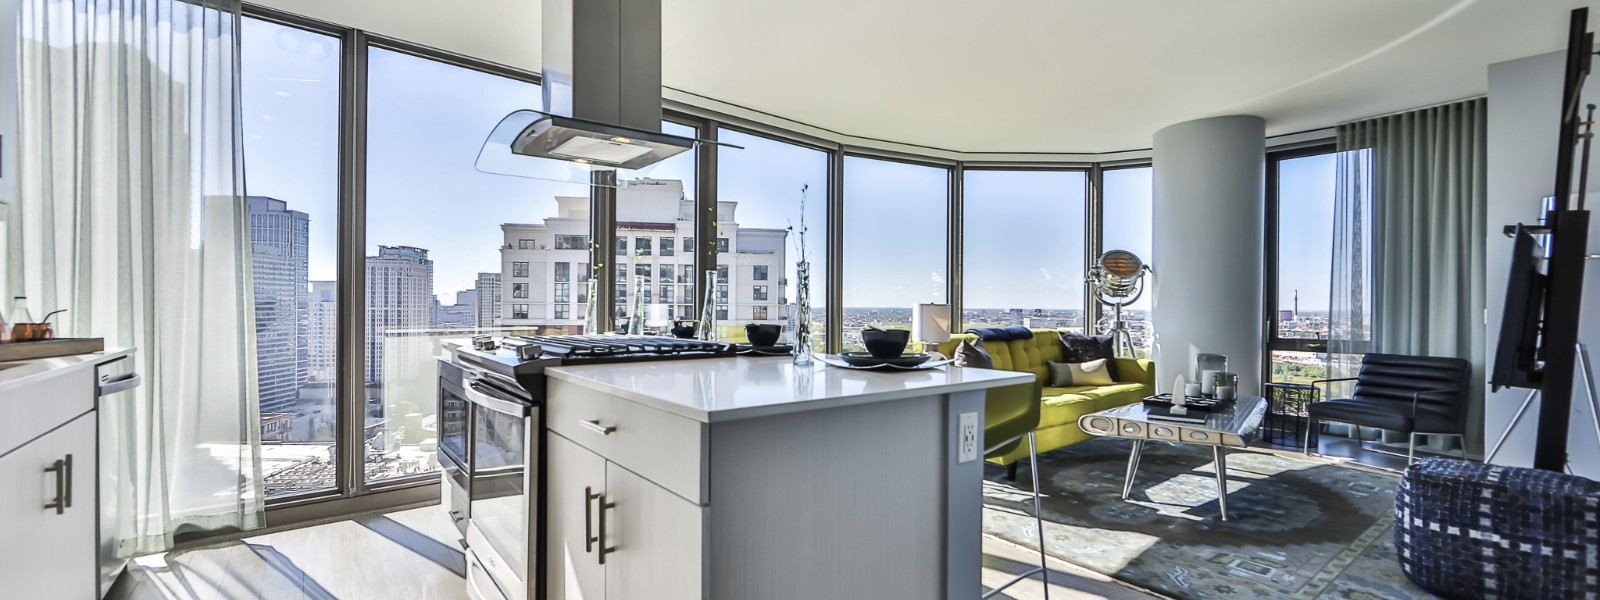 Apartment Condos For Rent In Chicago Real Estate Agent CPG - Chicago luxury apartment